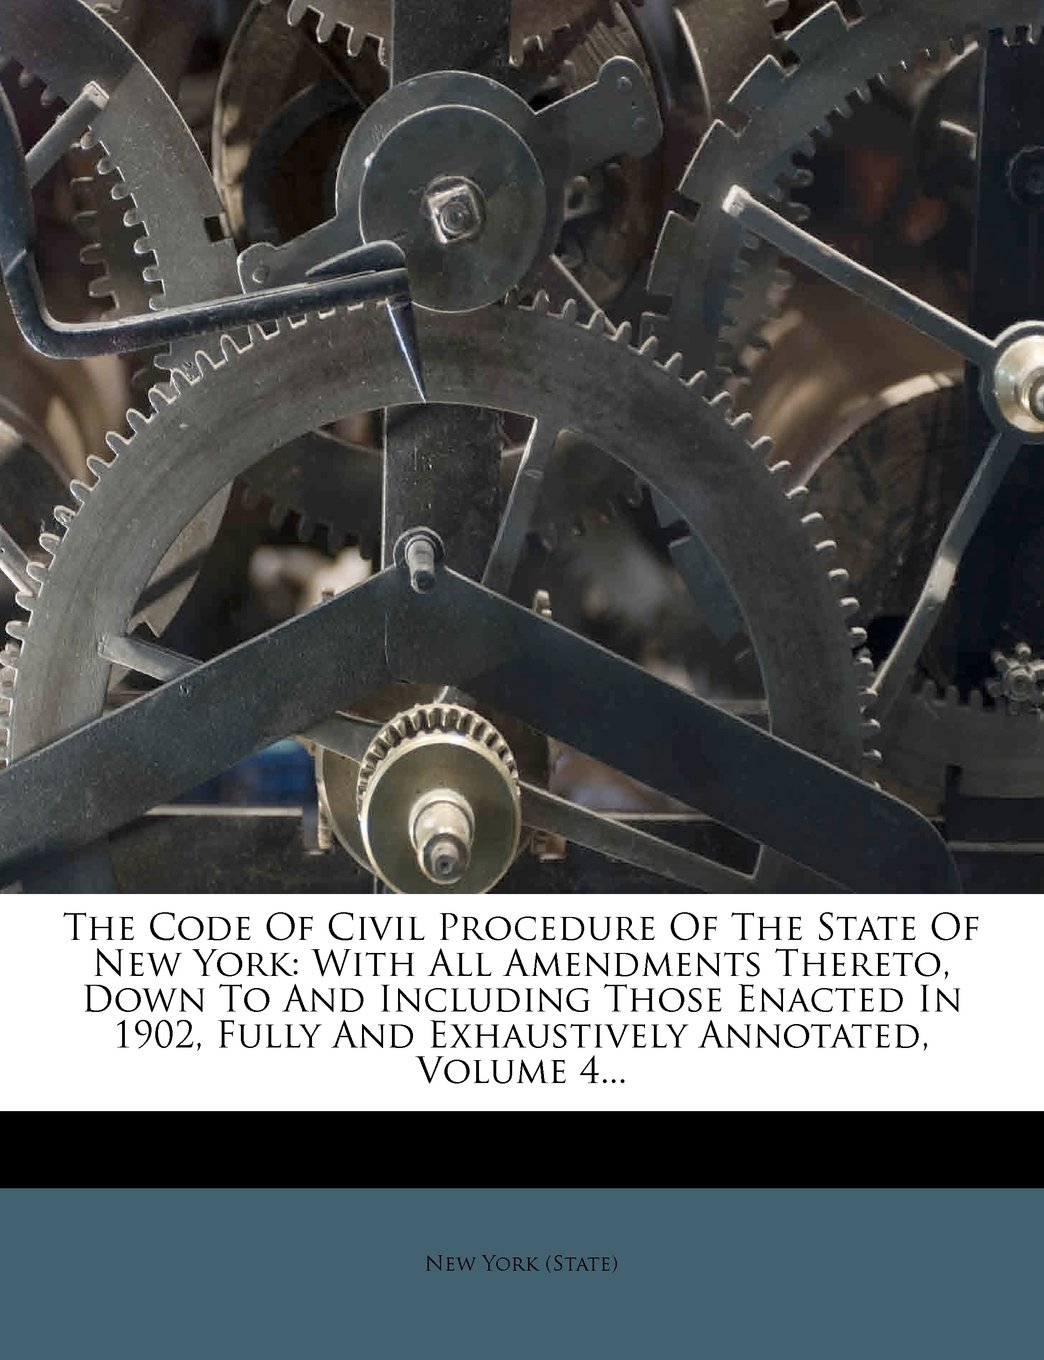 Read Online The Code Of Civil Procedure Of The State Of New York: With All Amendments Thereto, Down To And Including Those Enacted In 1902, Fully And Exhaustively Annotated, Volume 4... ebook